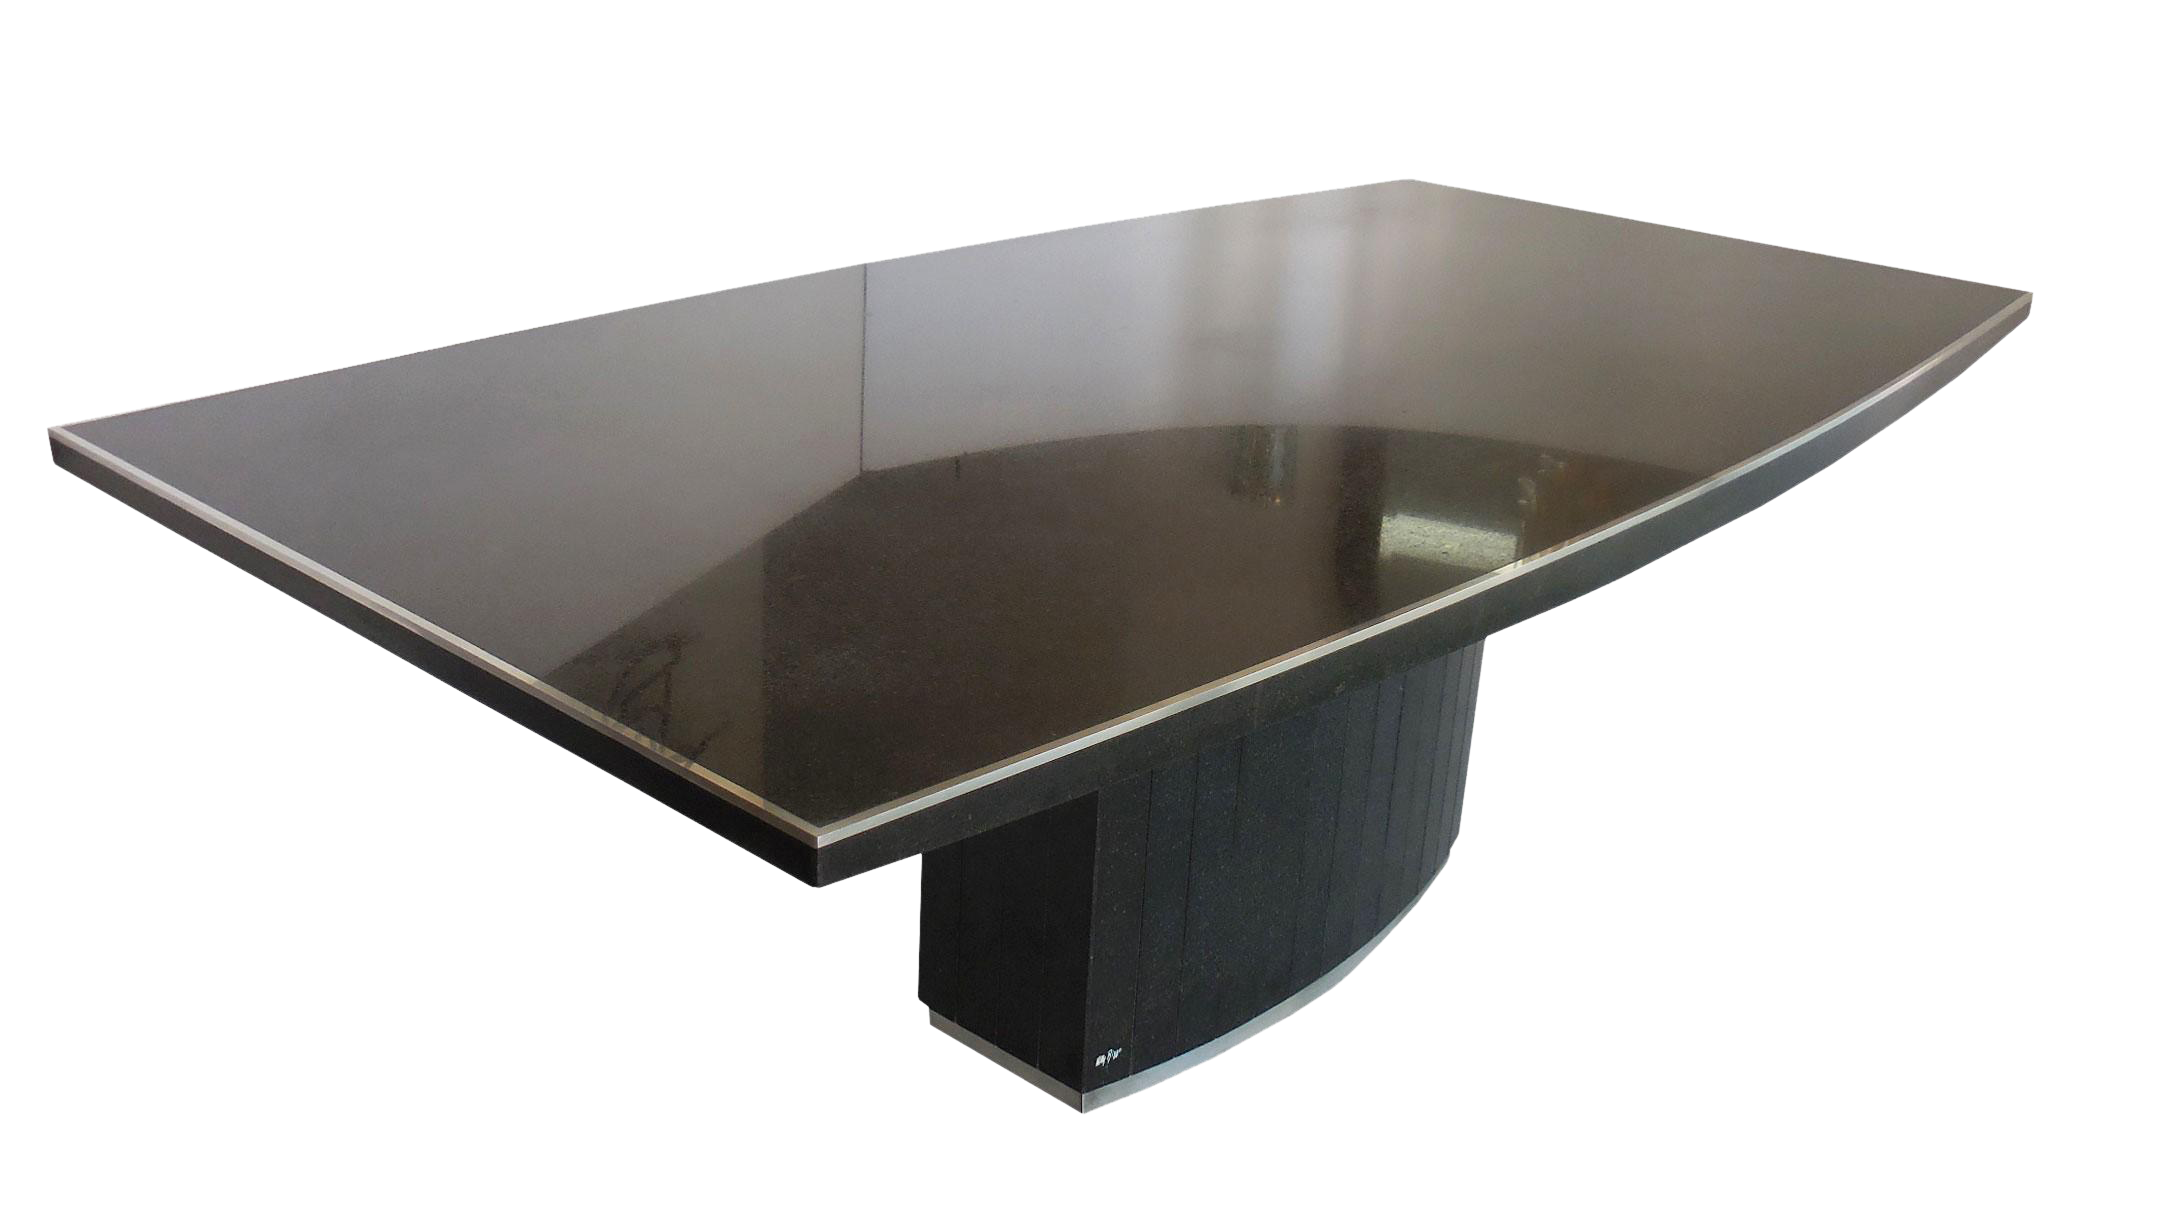 Exquisite rare black granite and stainless steel dining table by exquisite rare black granite and stainless steel dining table by willy rizzo decaso geotapseo Image collections